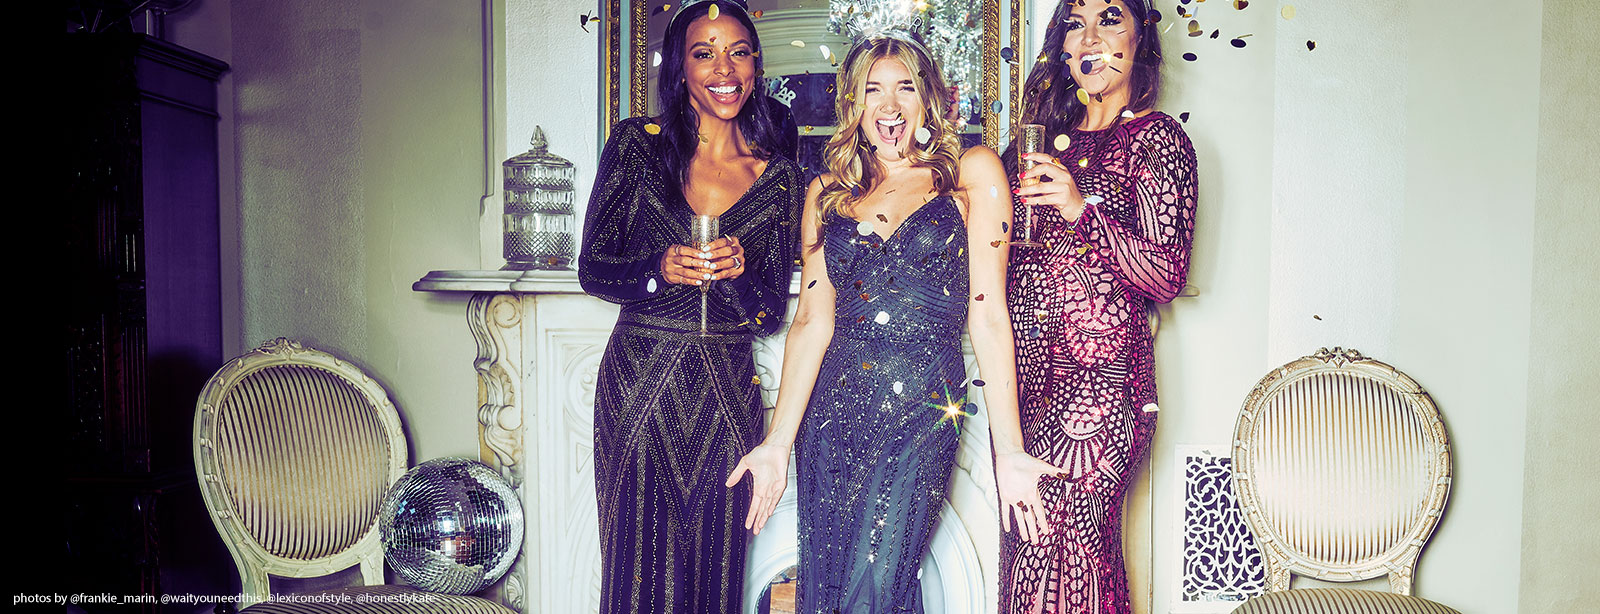 Three party goers wearing long sparkly dresses throwing confetti